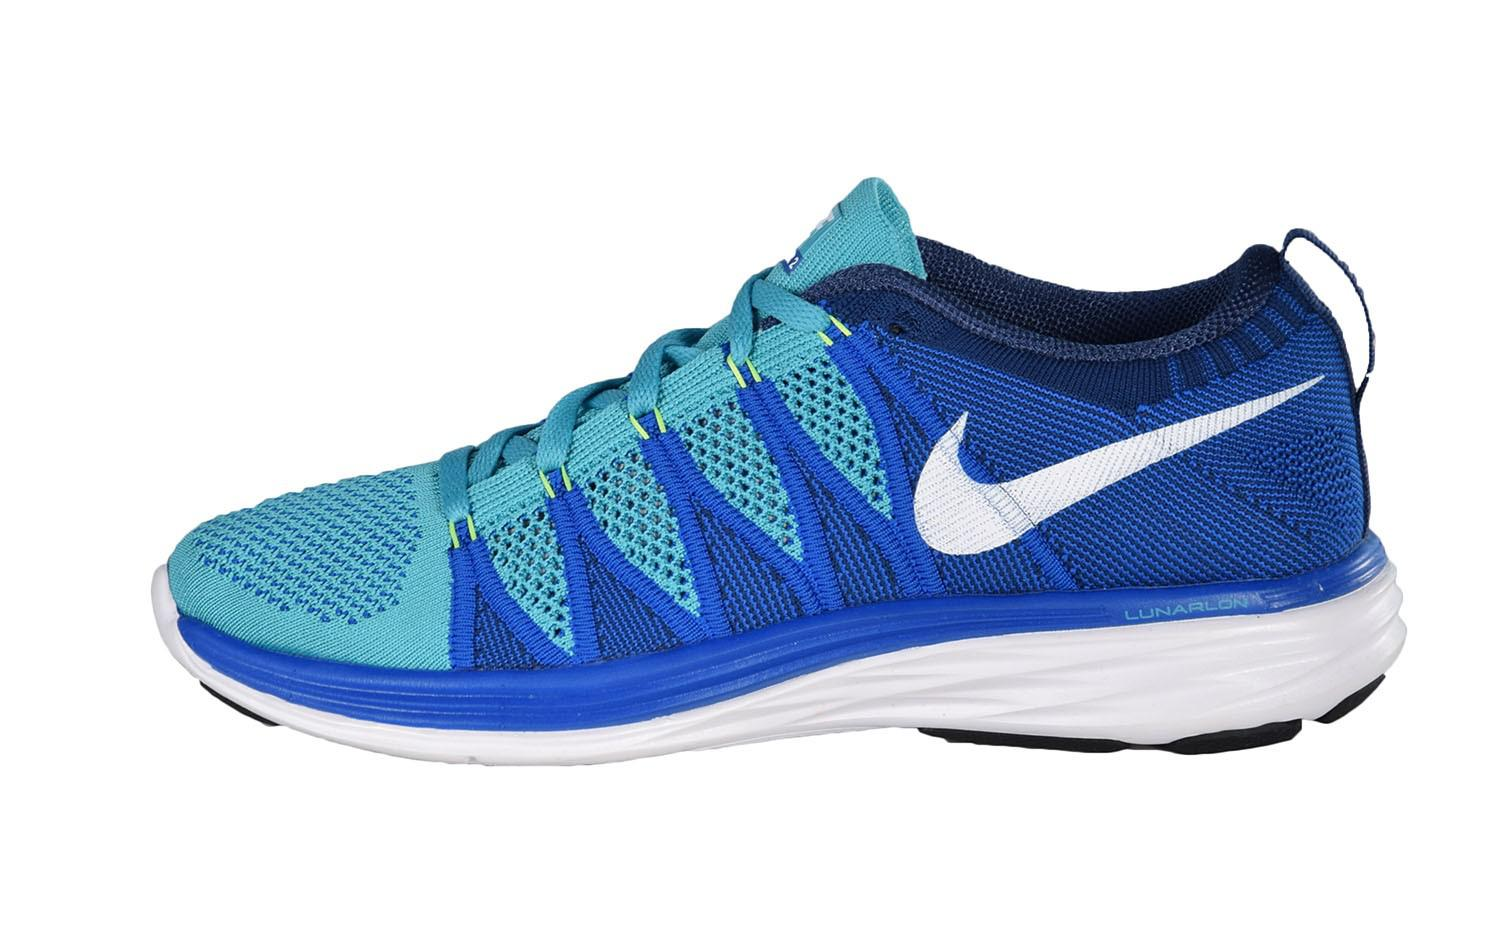 b2b840bf12943 Lyst - Nike Flyknit Lunar 2 Running Shoes Size 11 in Blue for Men